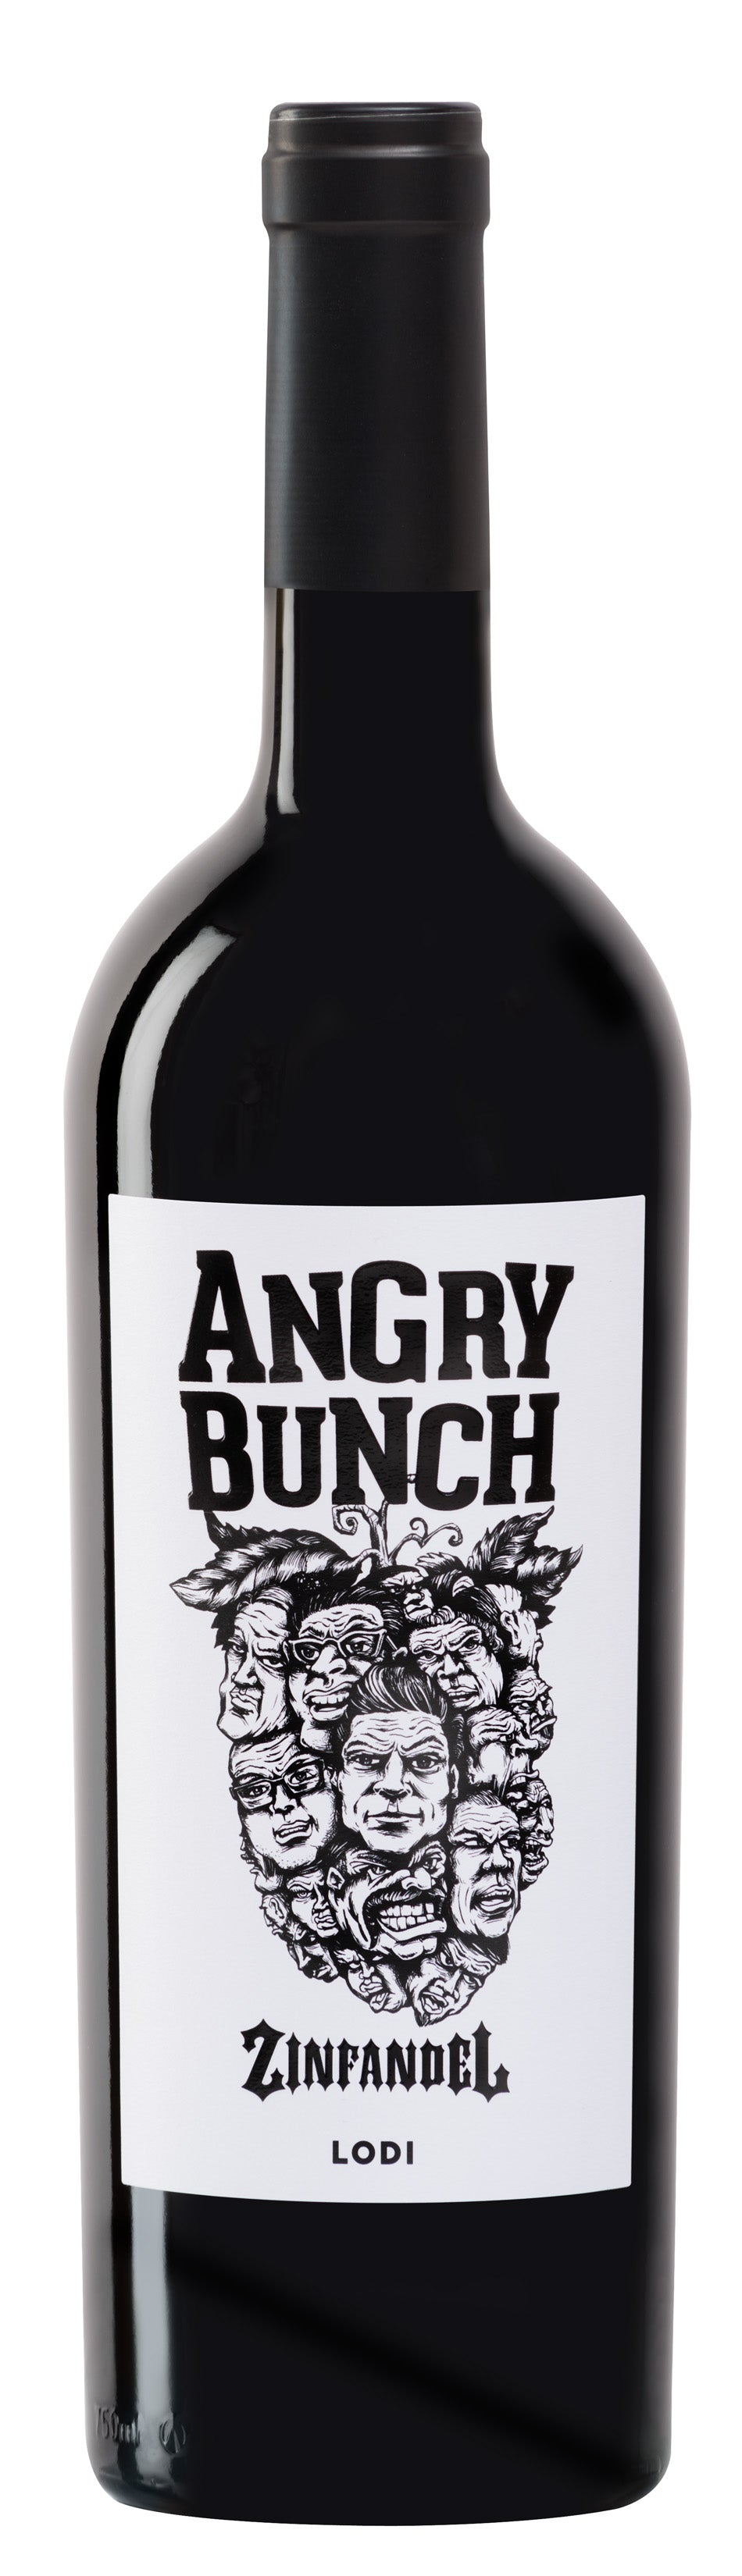 Angry Bunch Zinfandel